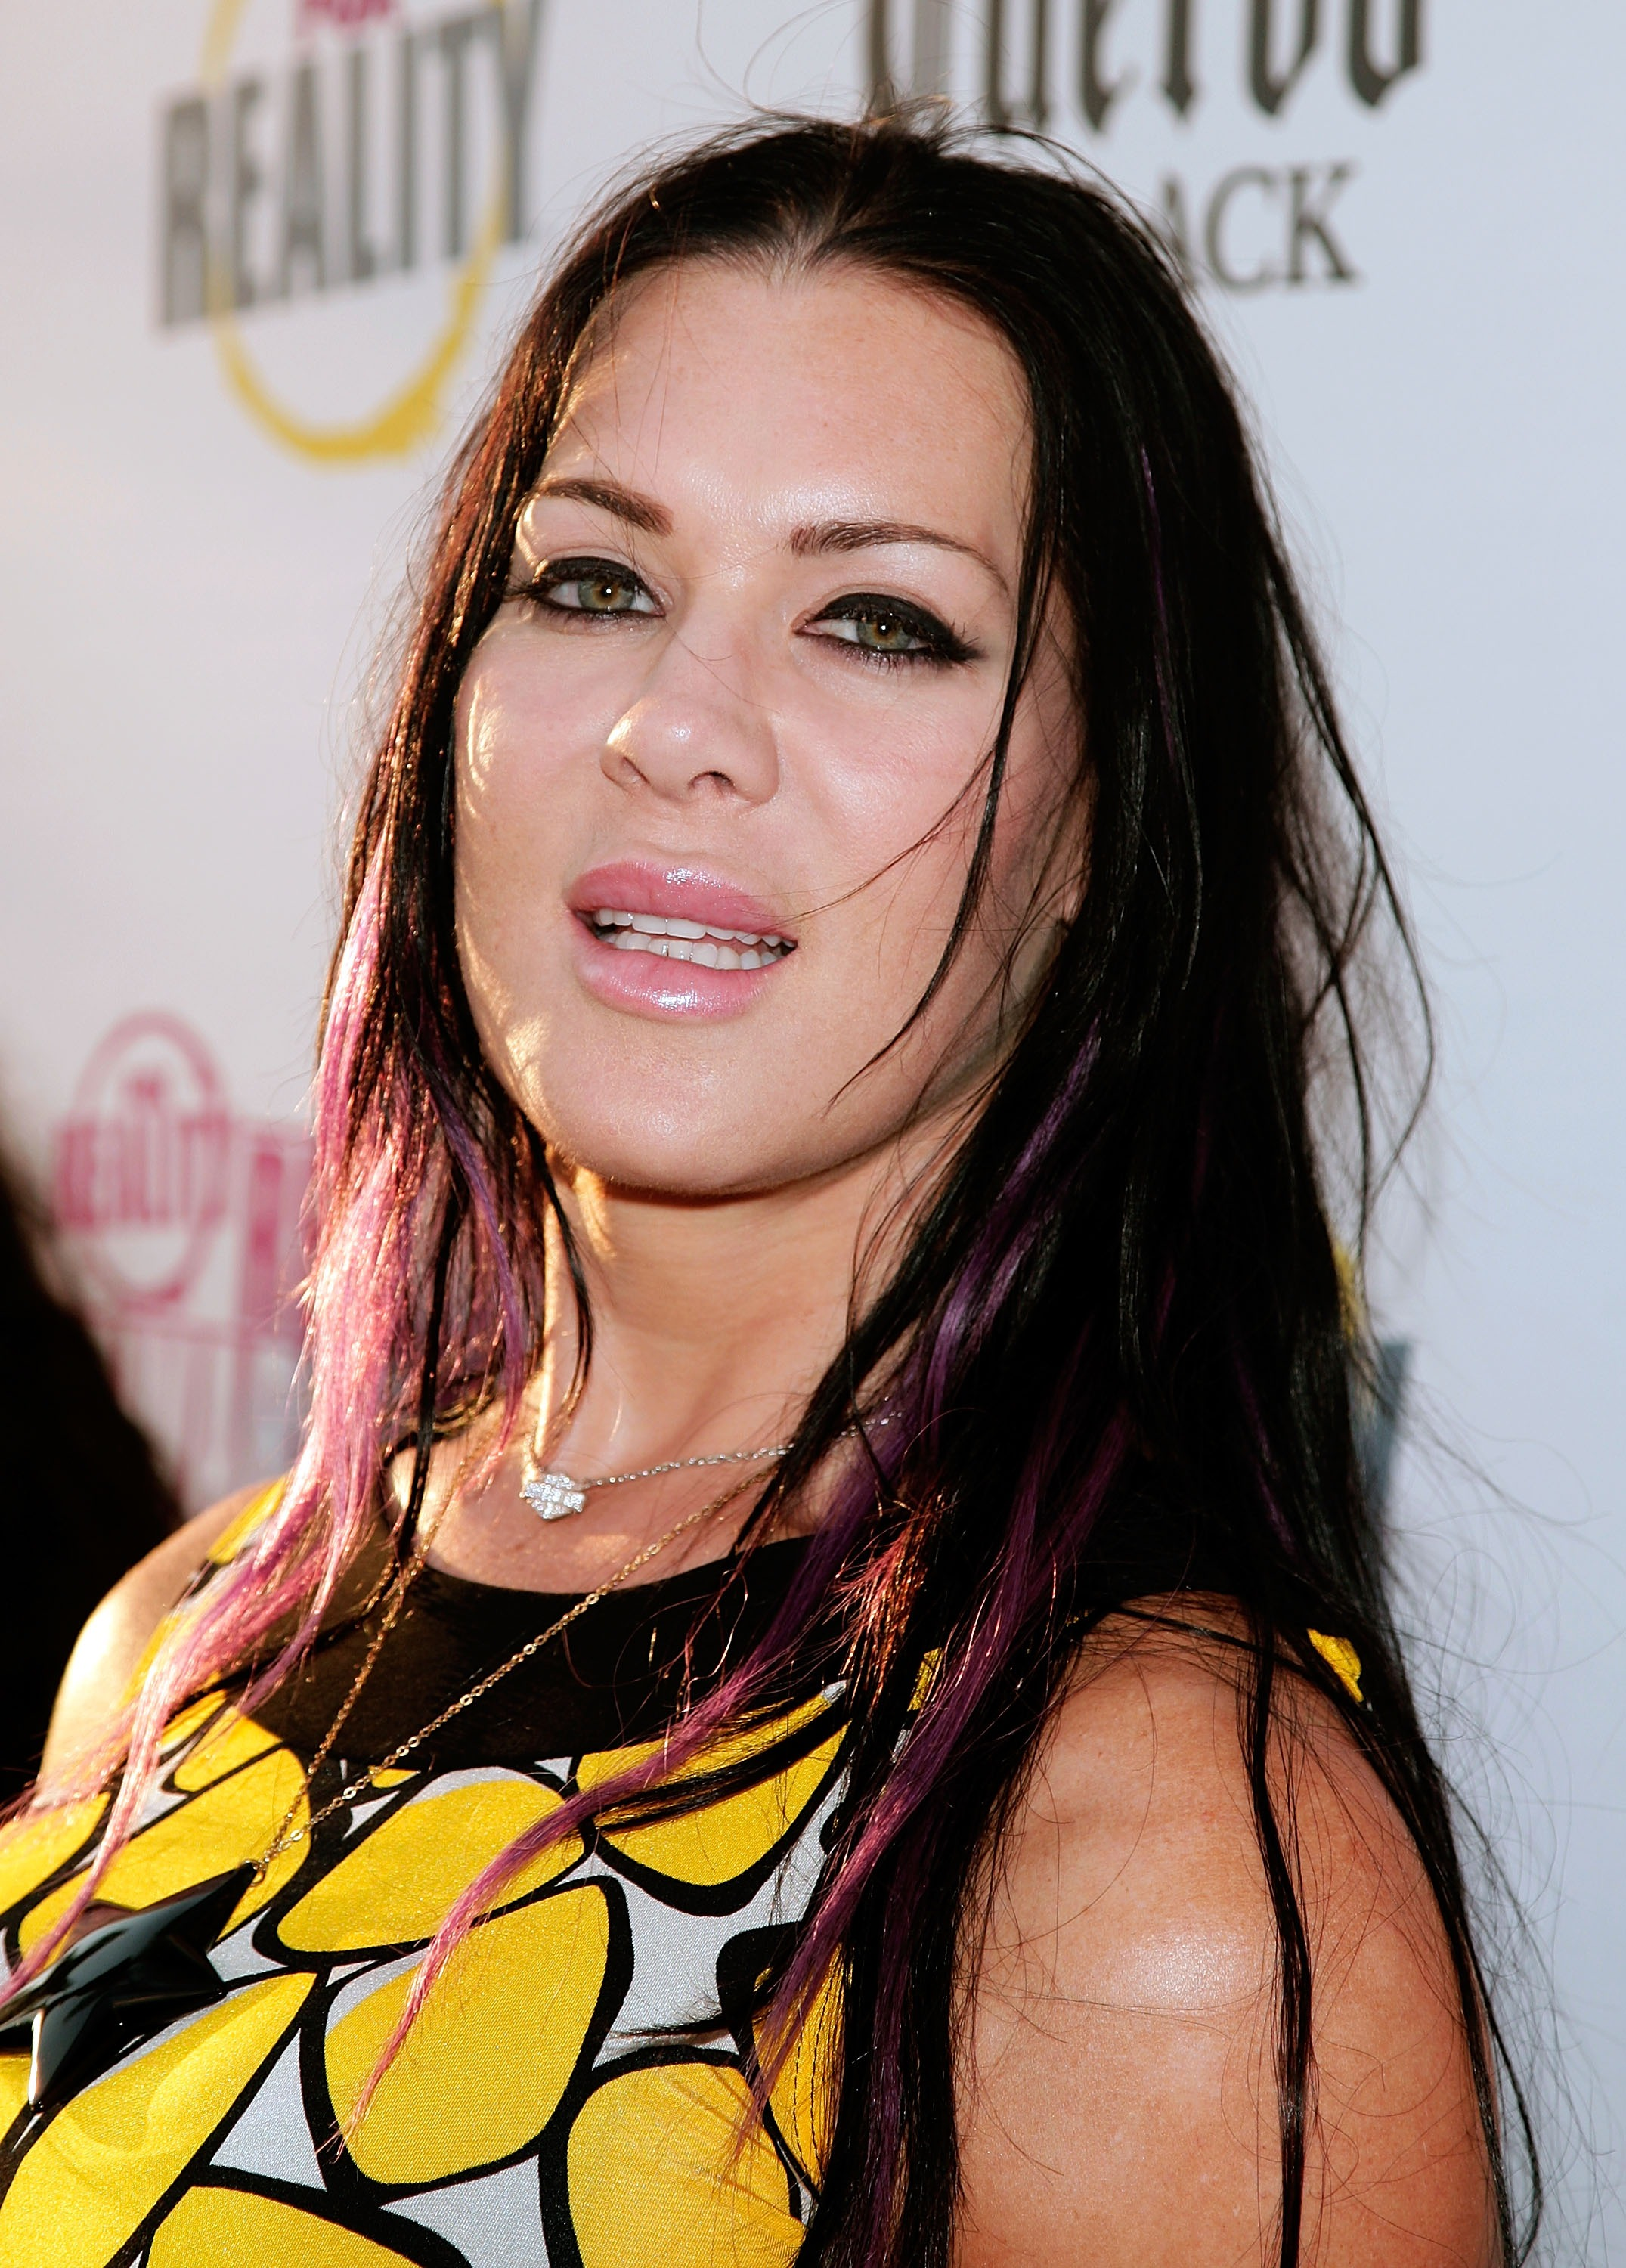 TV personality Joanie 'Chyna' Laurer arrives at the 2007 Fox Reality Channel Really Awards held at Boulevard 3 on October 2, 2007 in Hollywood, California. (Photo by Kevin Winter/Getty Images for Fox)